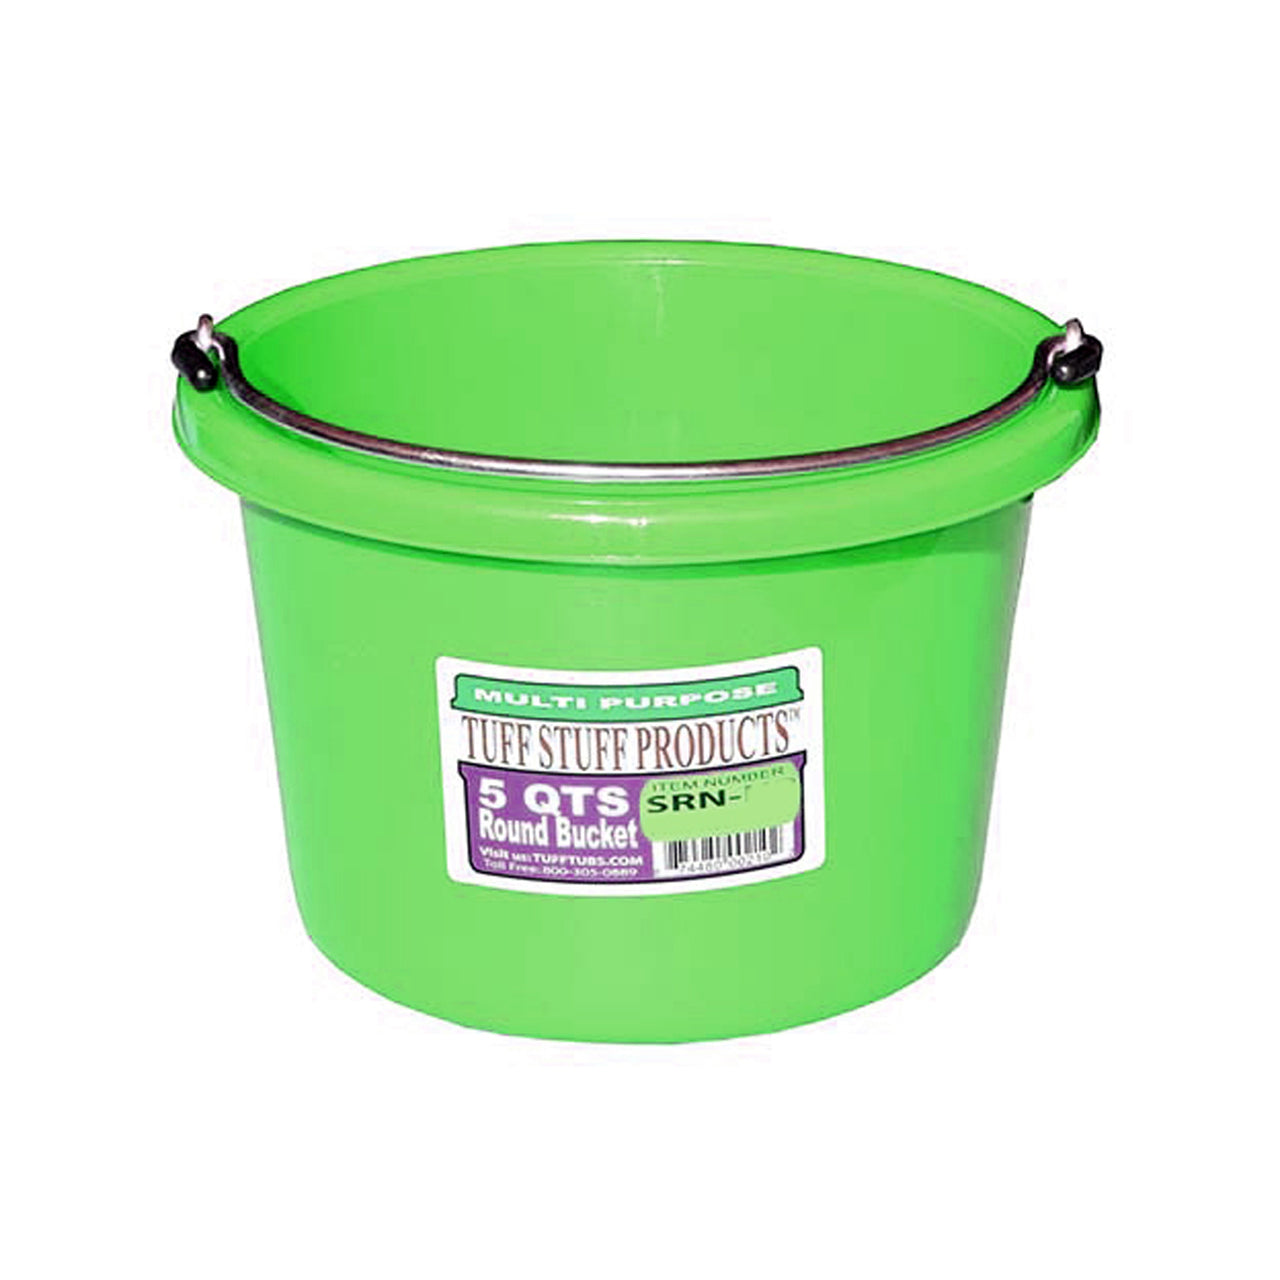 Tuff Stuff Small Round Bucket 5 Qts (Green) - Buckets Pails Feeders Scoops Tubs Bottles Tuff Stuff - Canada